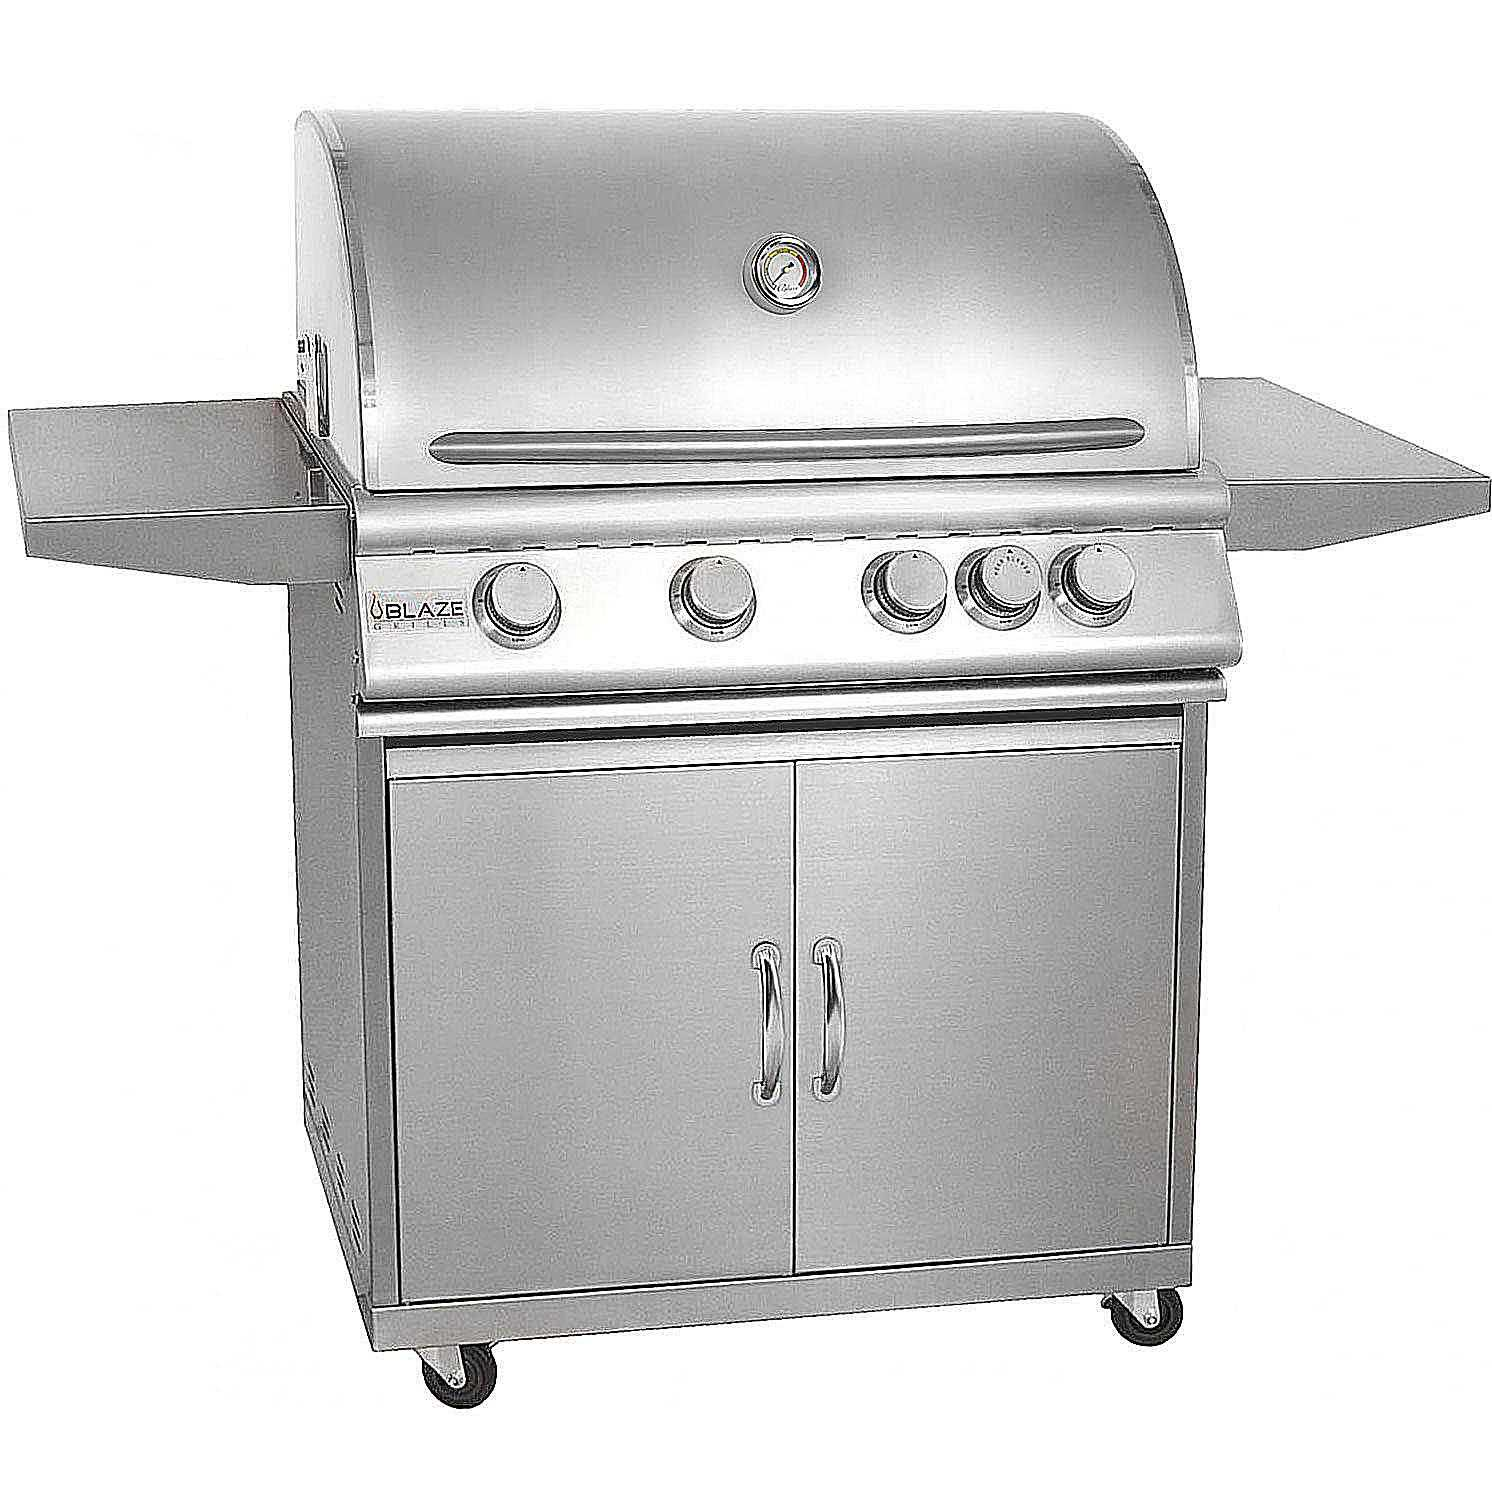 post smoker series oven charcoal model inch hood fire legacy with mount pedestal grill magic patio